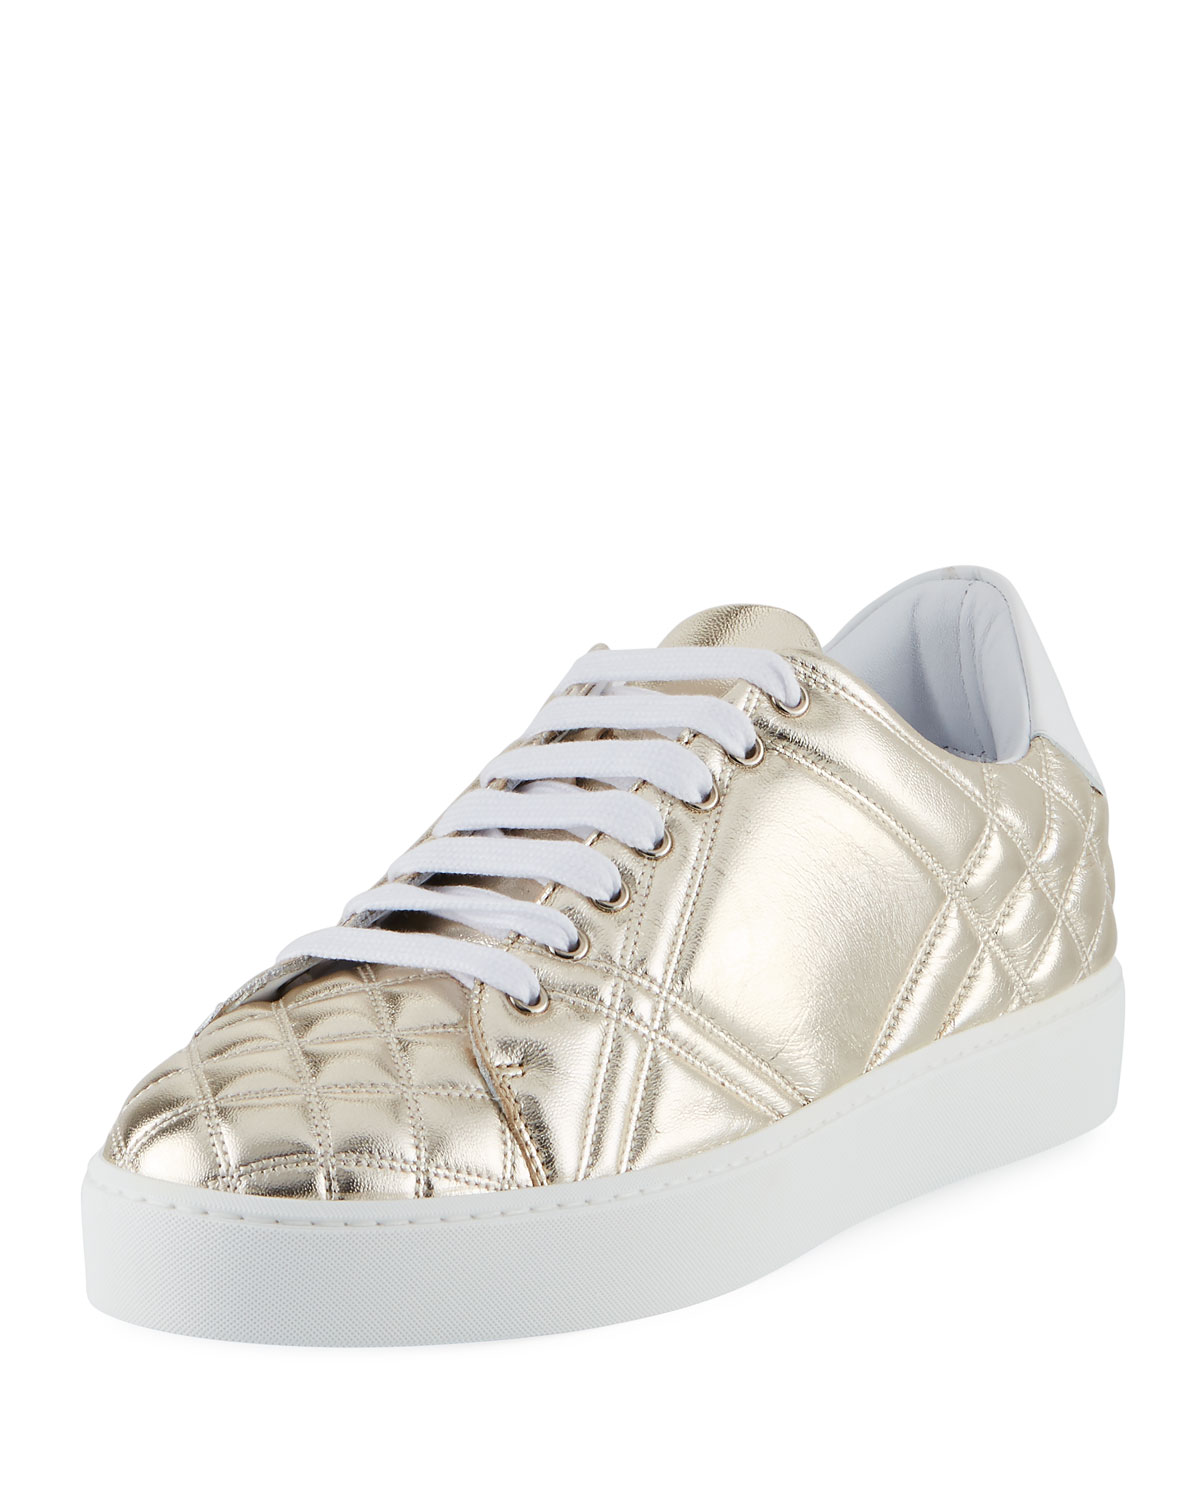 3d66cb9b19 Burberry Westford Quilted Metallic Leather Low-Top Sneaker